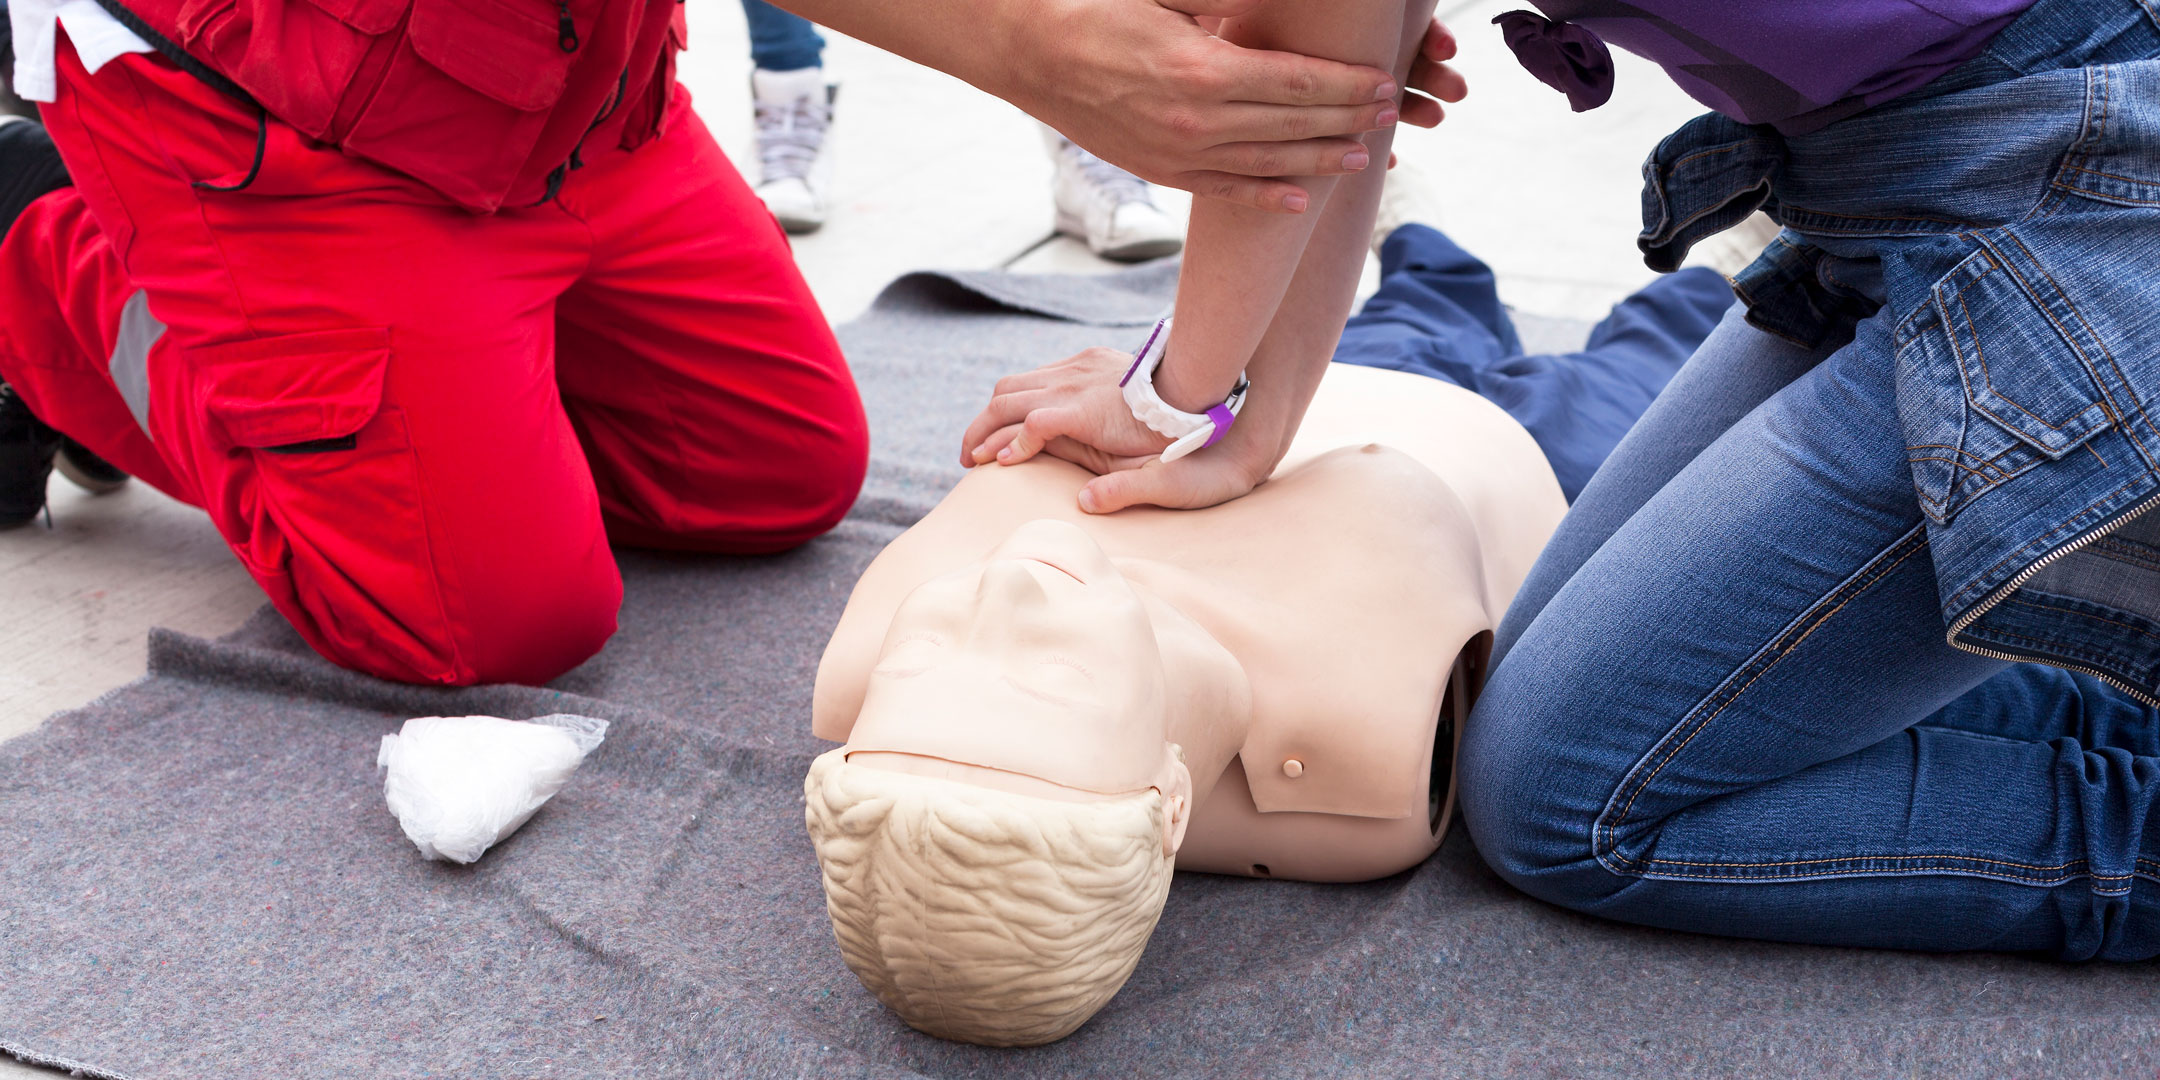 Close-up of CPR instructor helping a student perform CPR on a manikin